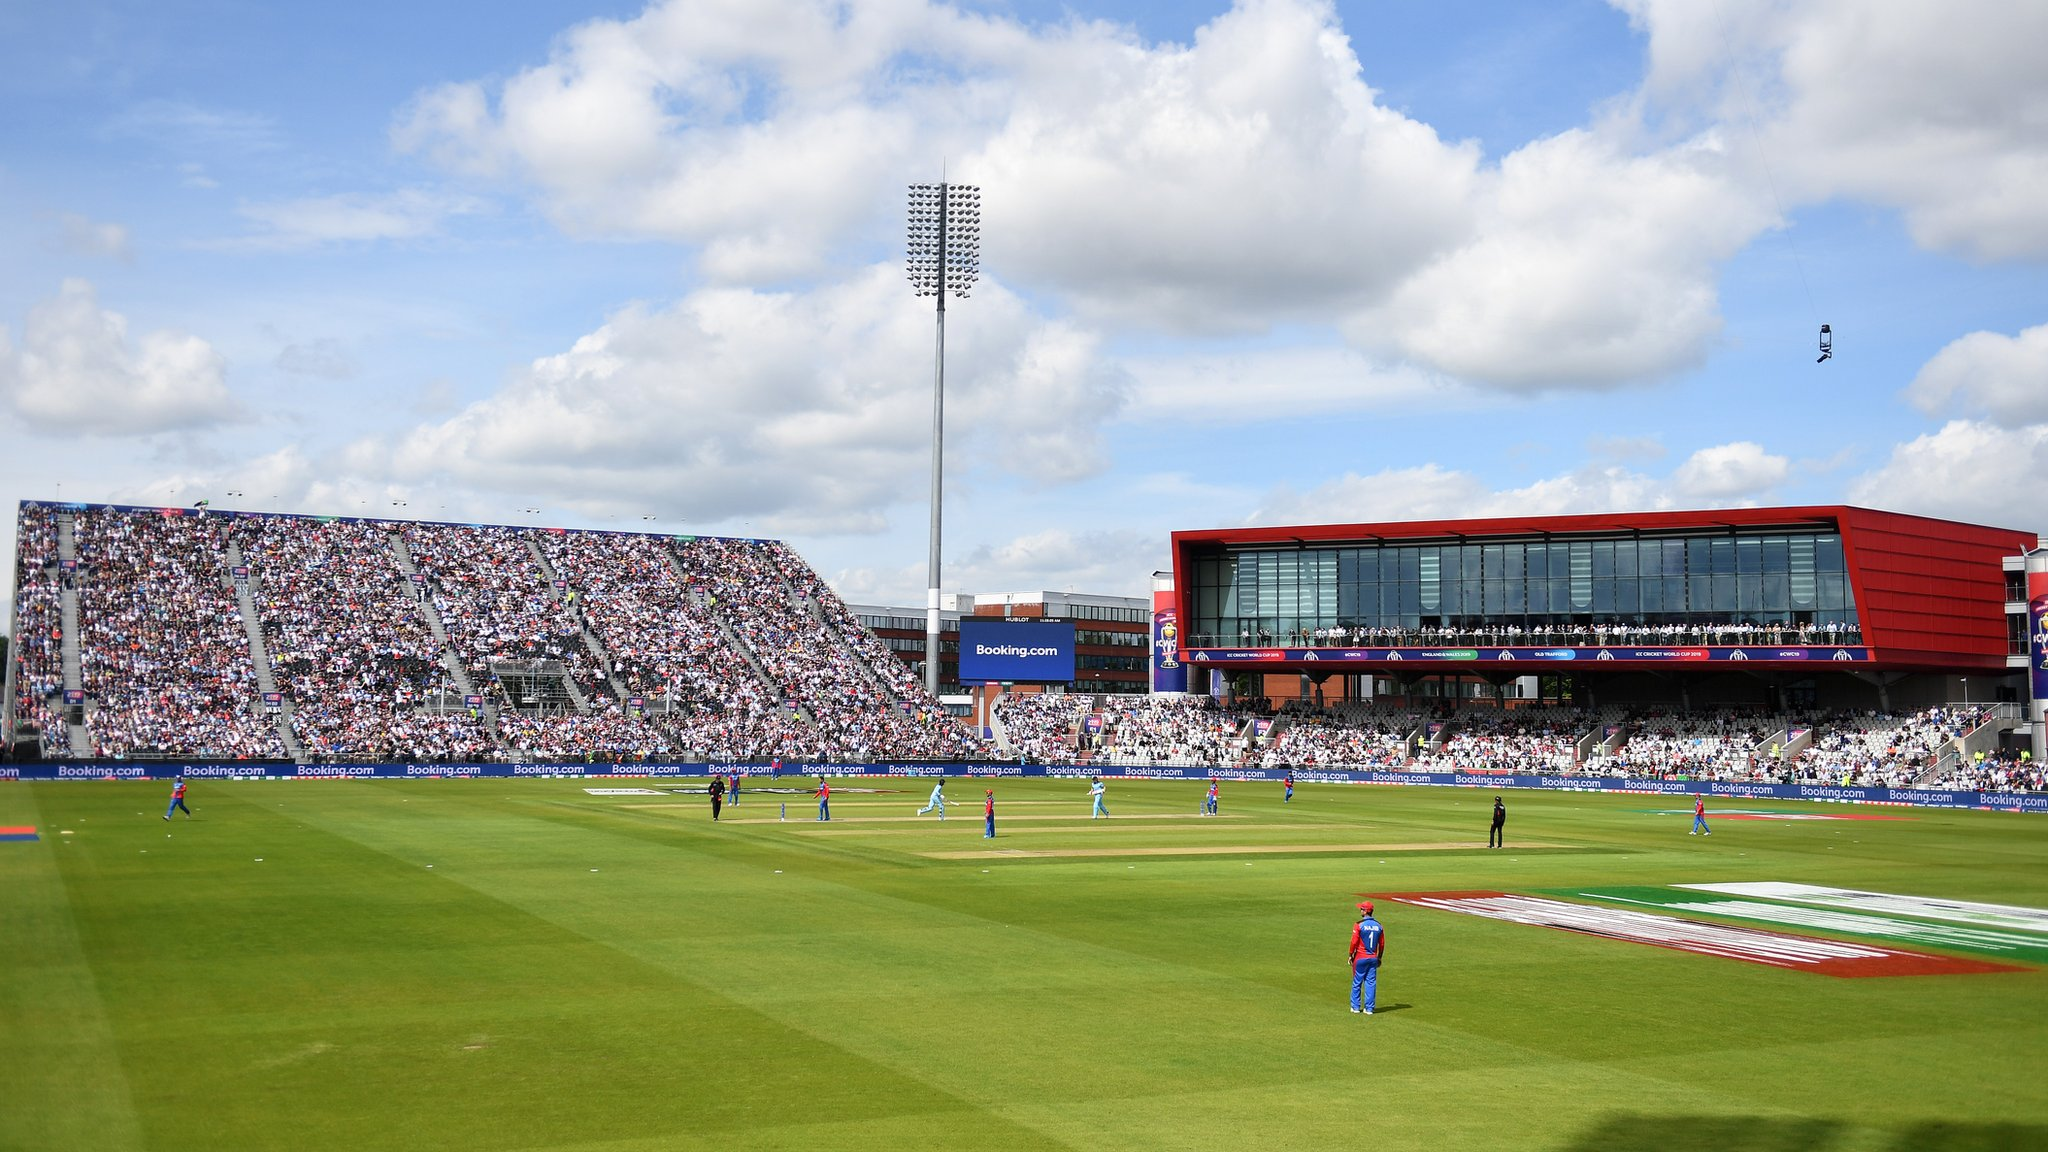 Cricket World Cup: Afghanistan players in Manchester restaurant altercation